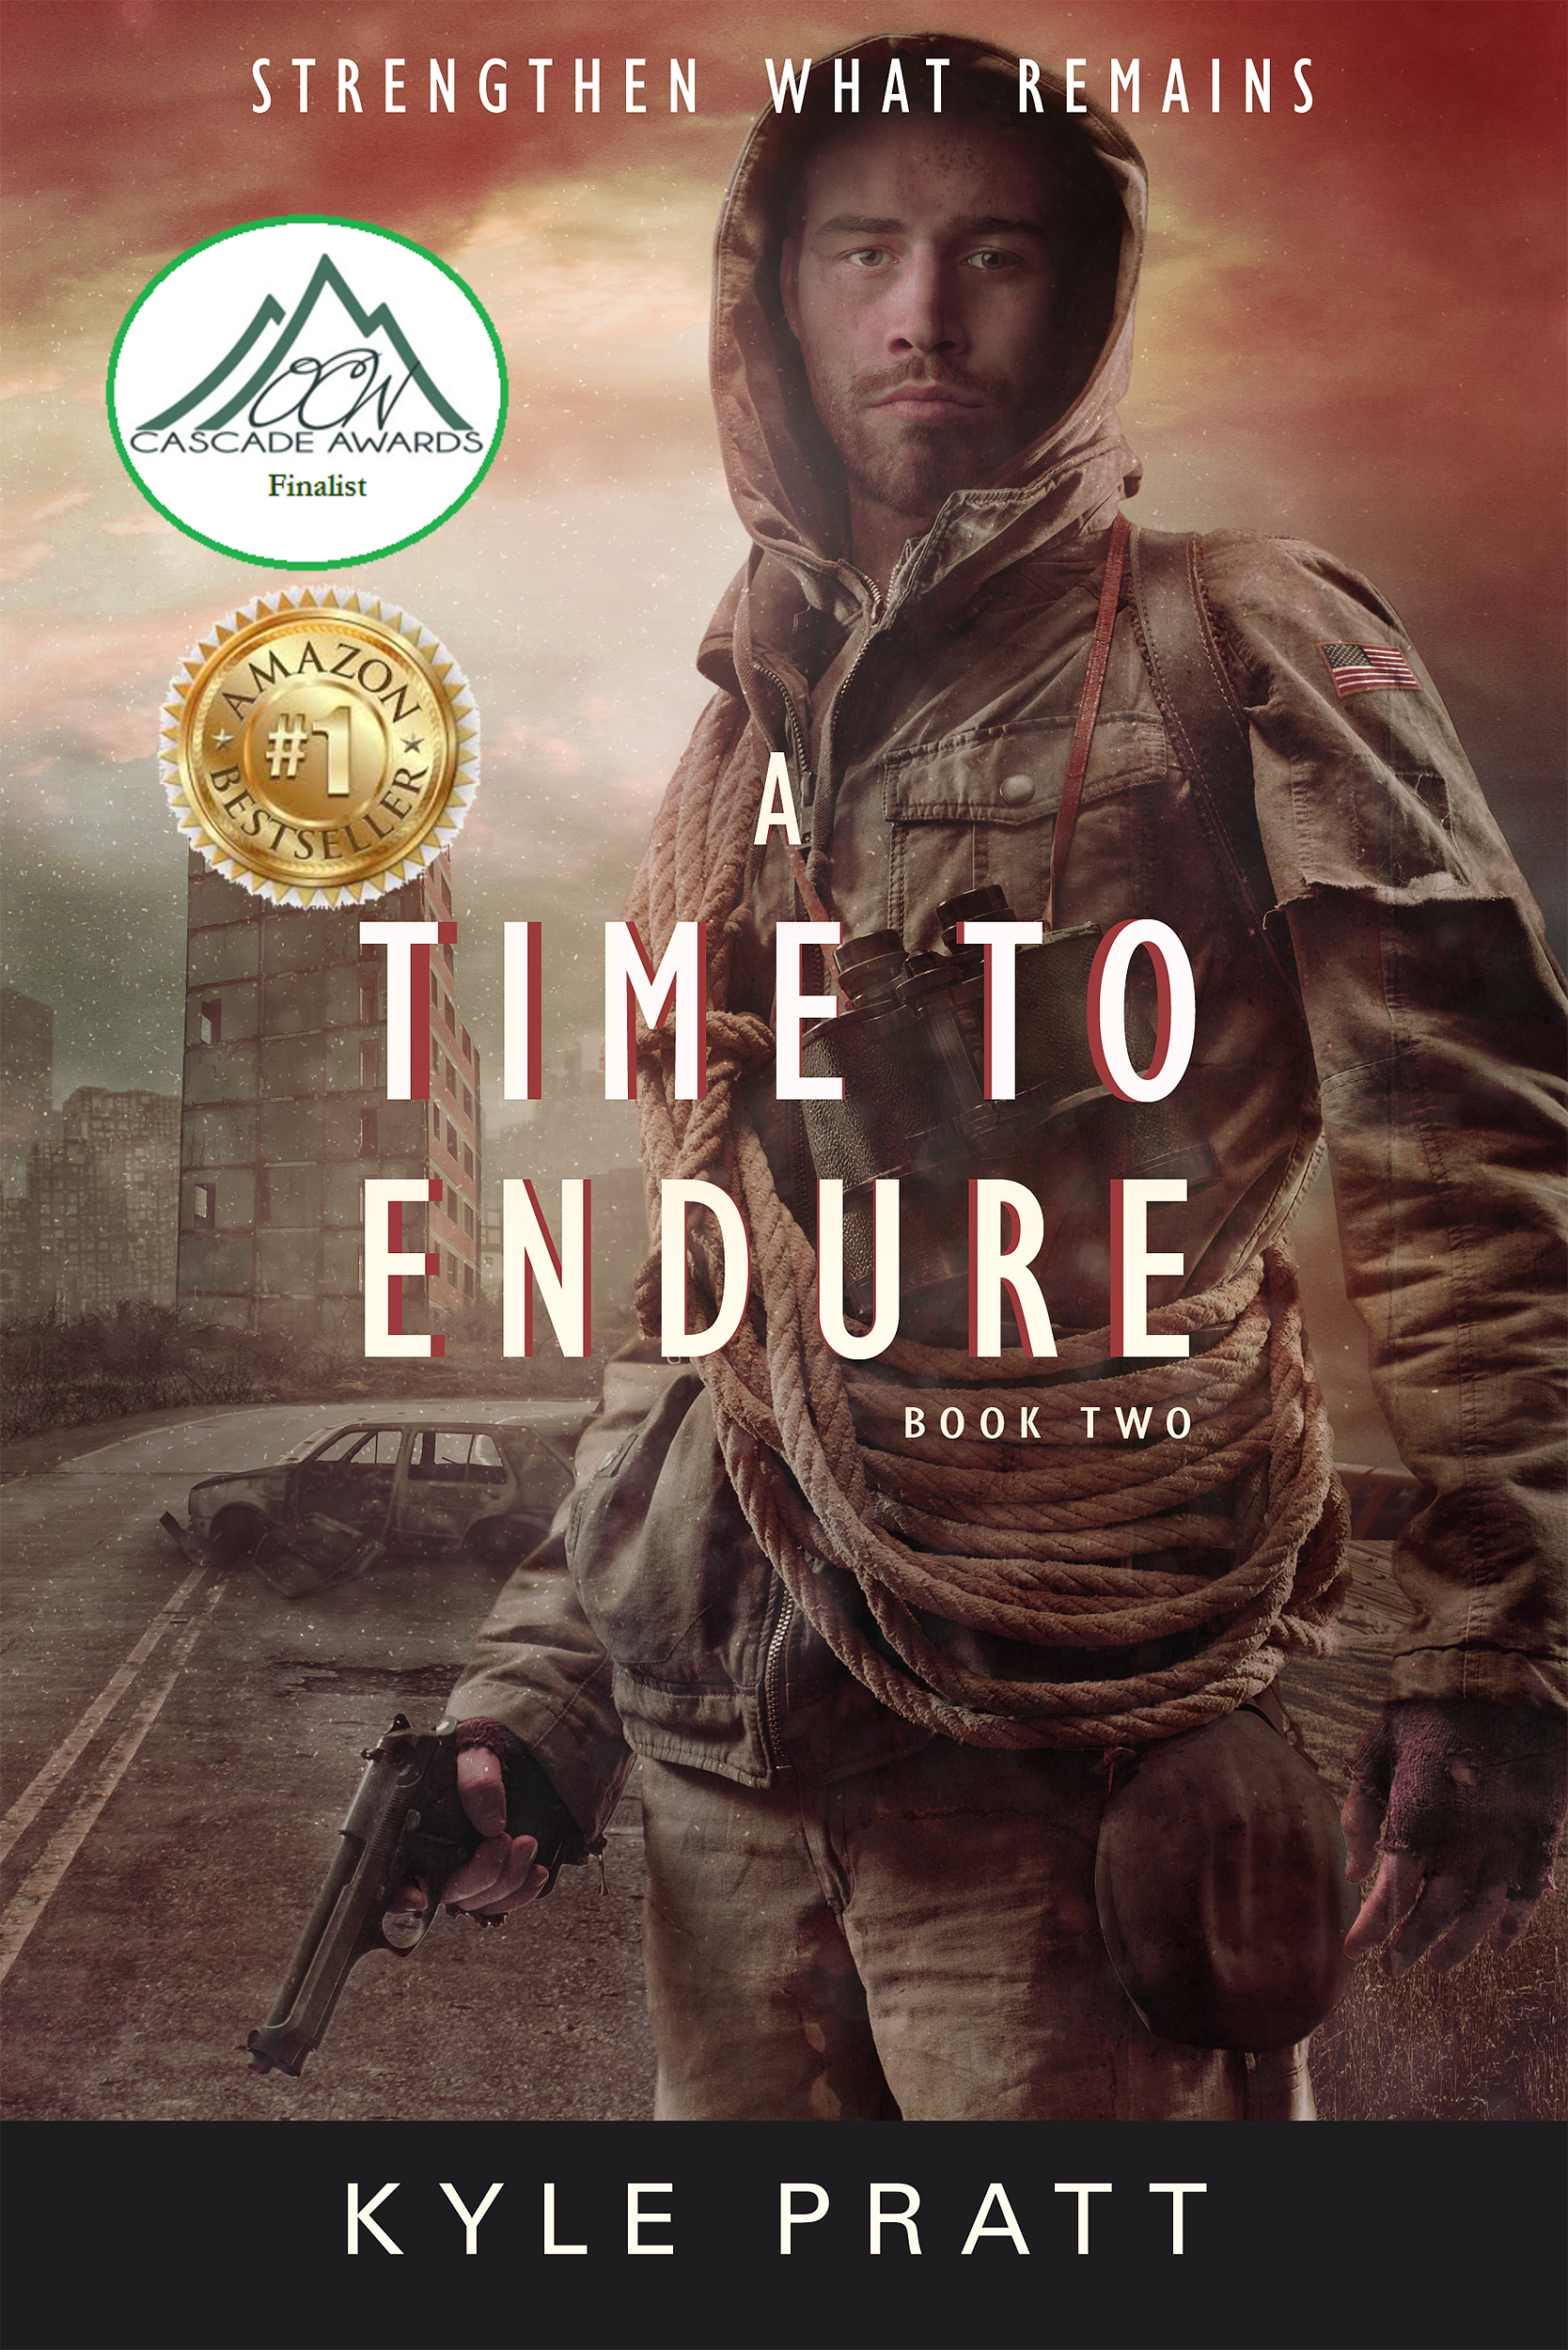 A Time to Endure    The second novel in the Strengthen What Remains series.    Cascade Award finalist    Amazon number one bestseller   The nation's economy teeters on the verge of collapse. The dollar plunges, inflation runs rampant, and the next civil war threatens to decimate the wounded country. In the face of tyranny, panic, and growing hunger, Caden struggles to keep his family and town together. But how can he save his community when the nation is collapsing around it?